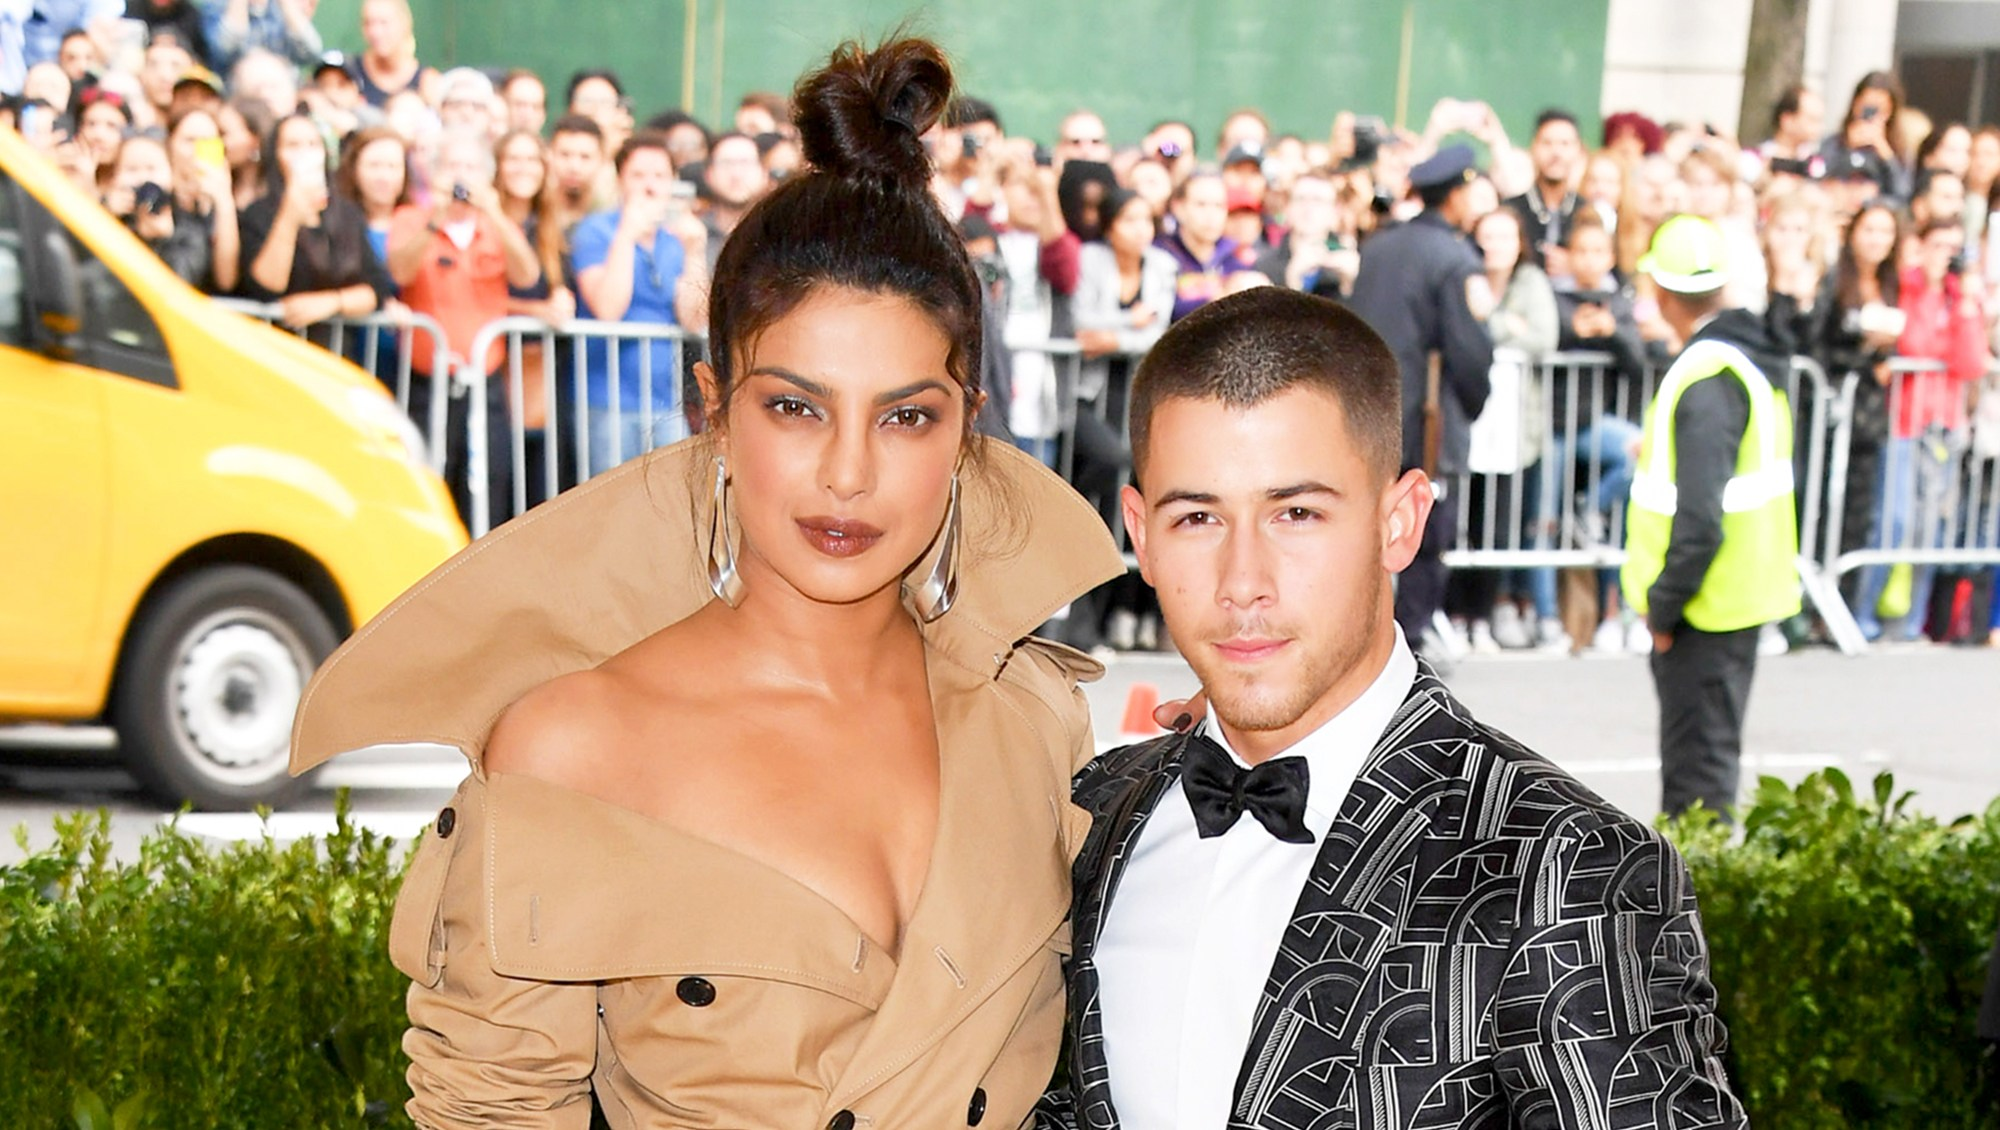 Priyanka Chopra and Nick Jonas attend the 'Rei Kawakubo/Comme des Garcons: Art Of The In-Between' 2017 Costume Institute Gala at Metropolitan Museum of Art in New York City.